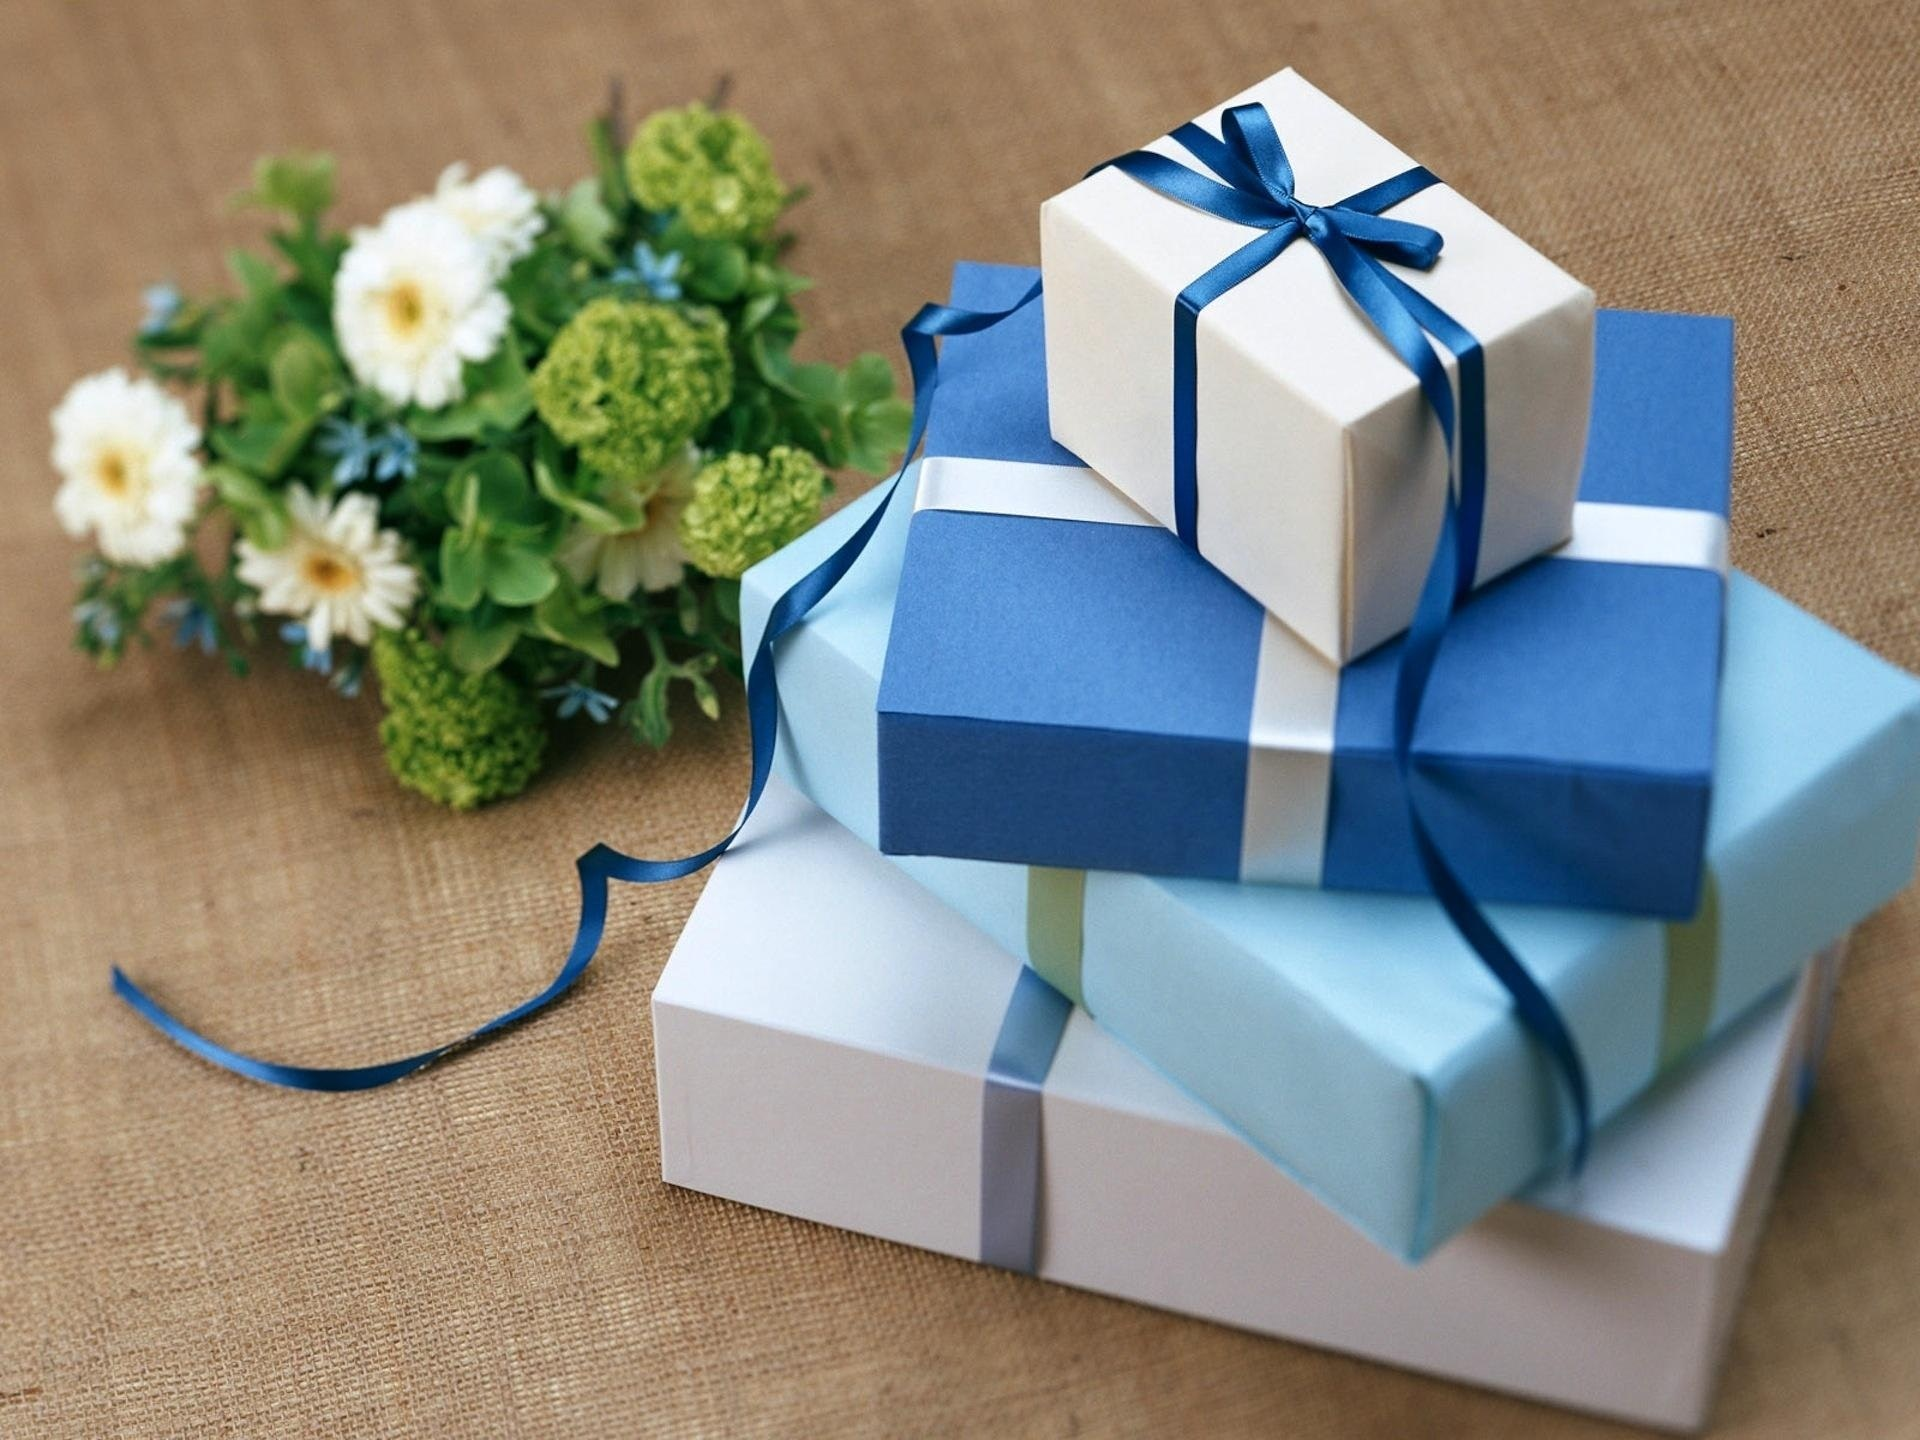 Easy Gifting Options That Help You Pick A Perfect Gift!